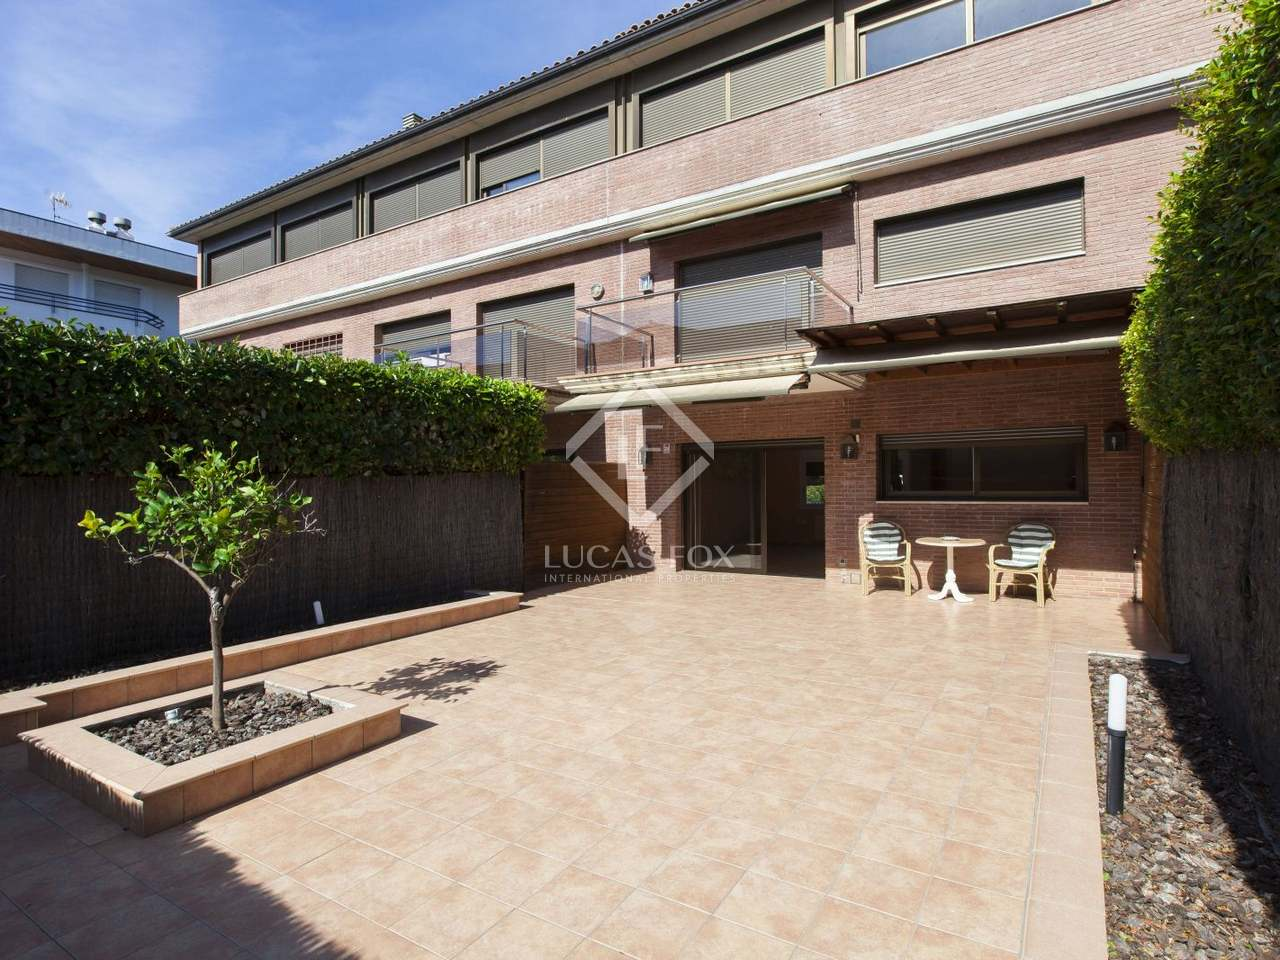 Terraced house to buy in vinyet sitges - Terraced modern homes with underlying garage ...